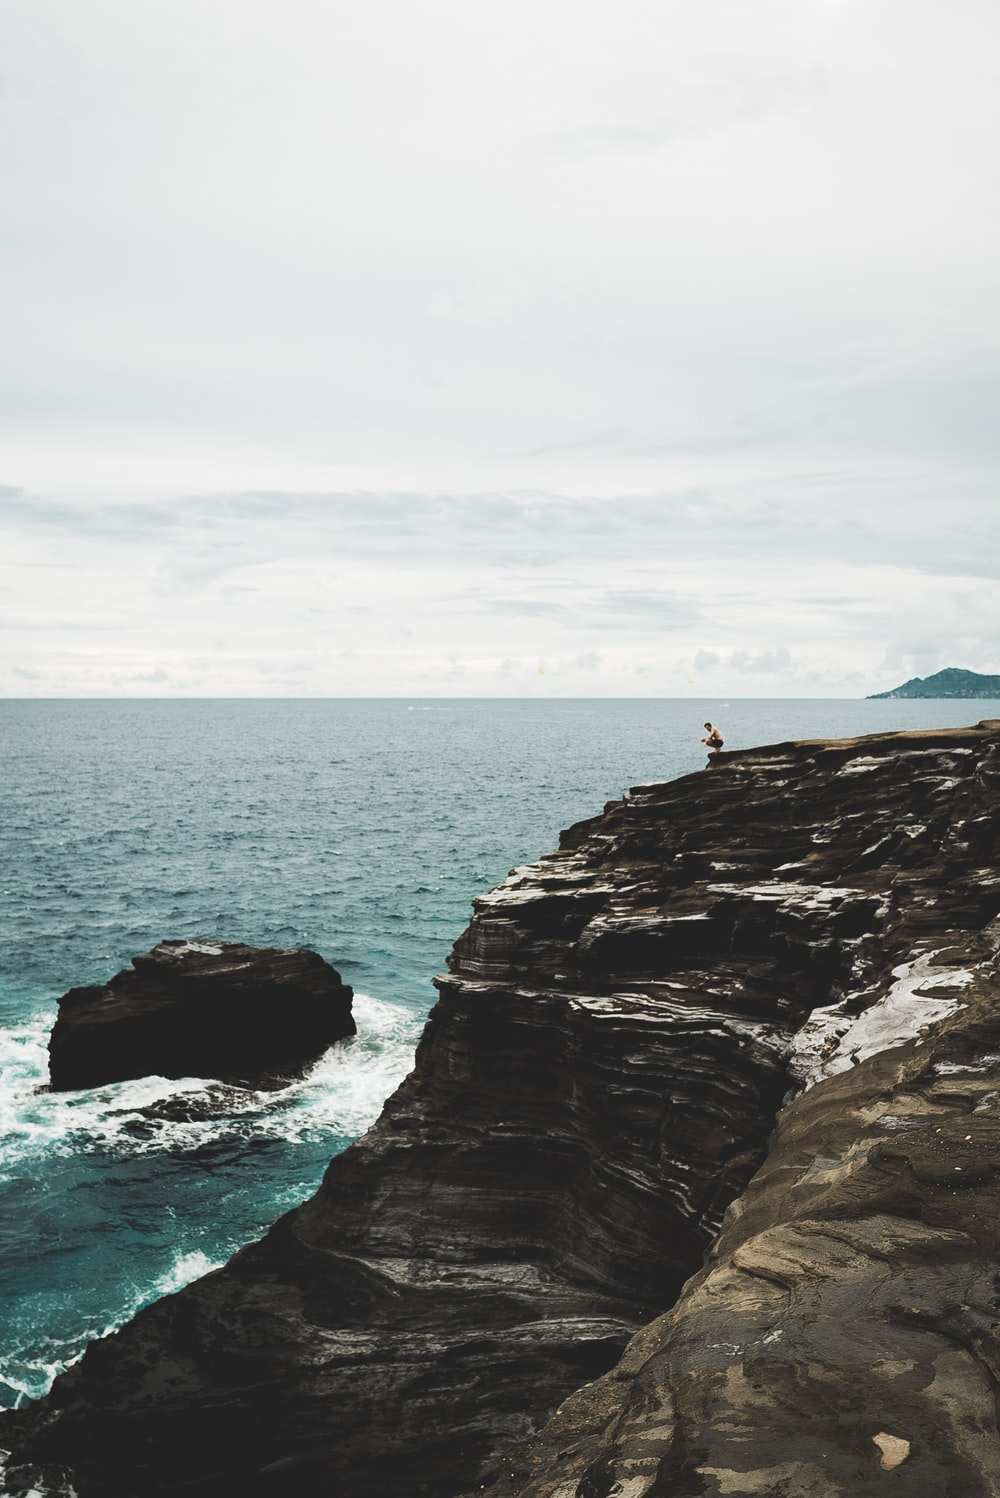 person sitting on cliff near body of water